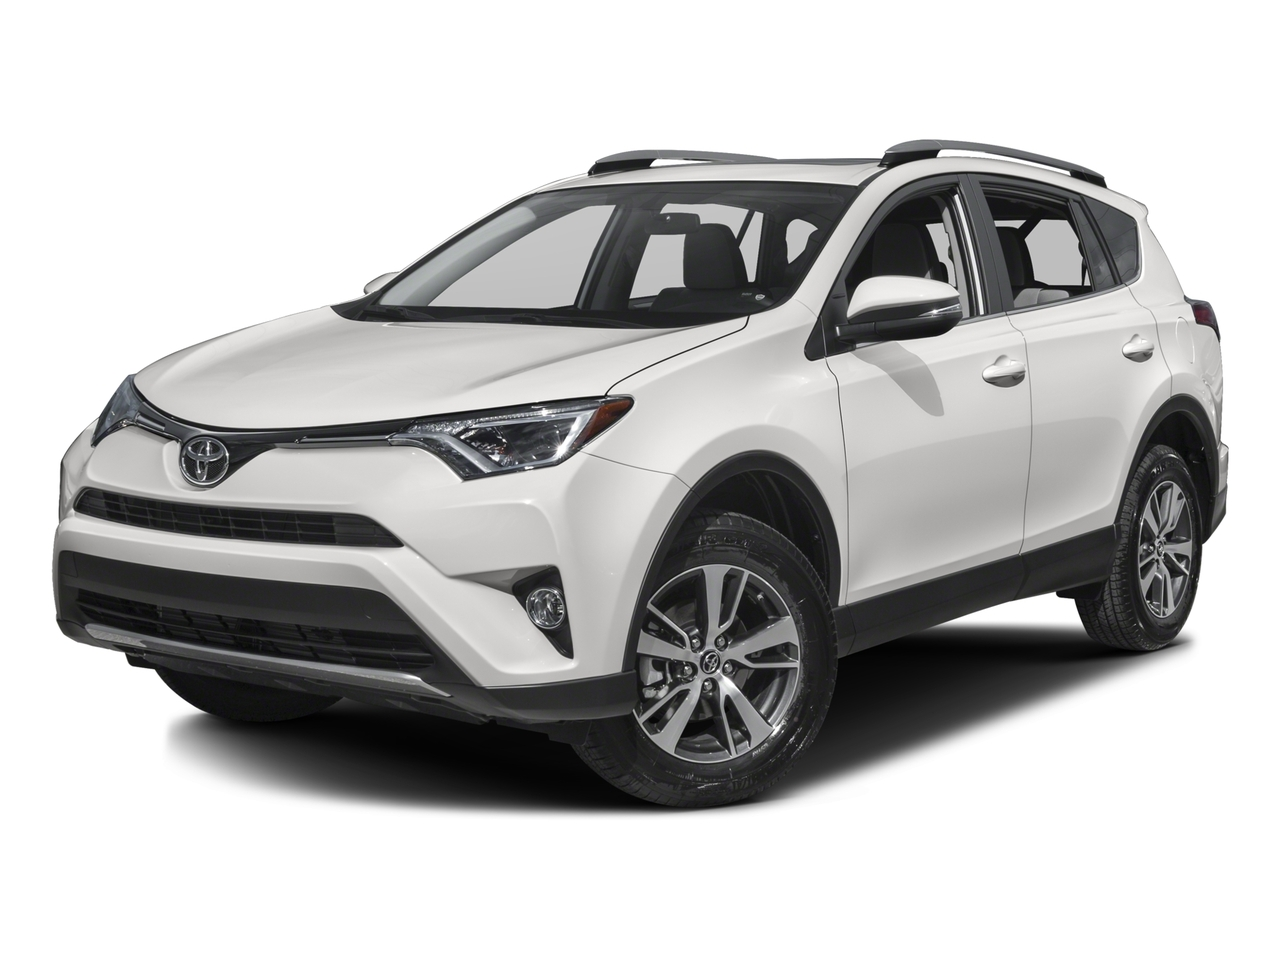 inventory in a buy for htm ma list used brockton suv lease or copeland sale premium toyota index cars